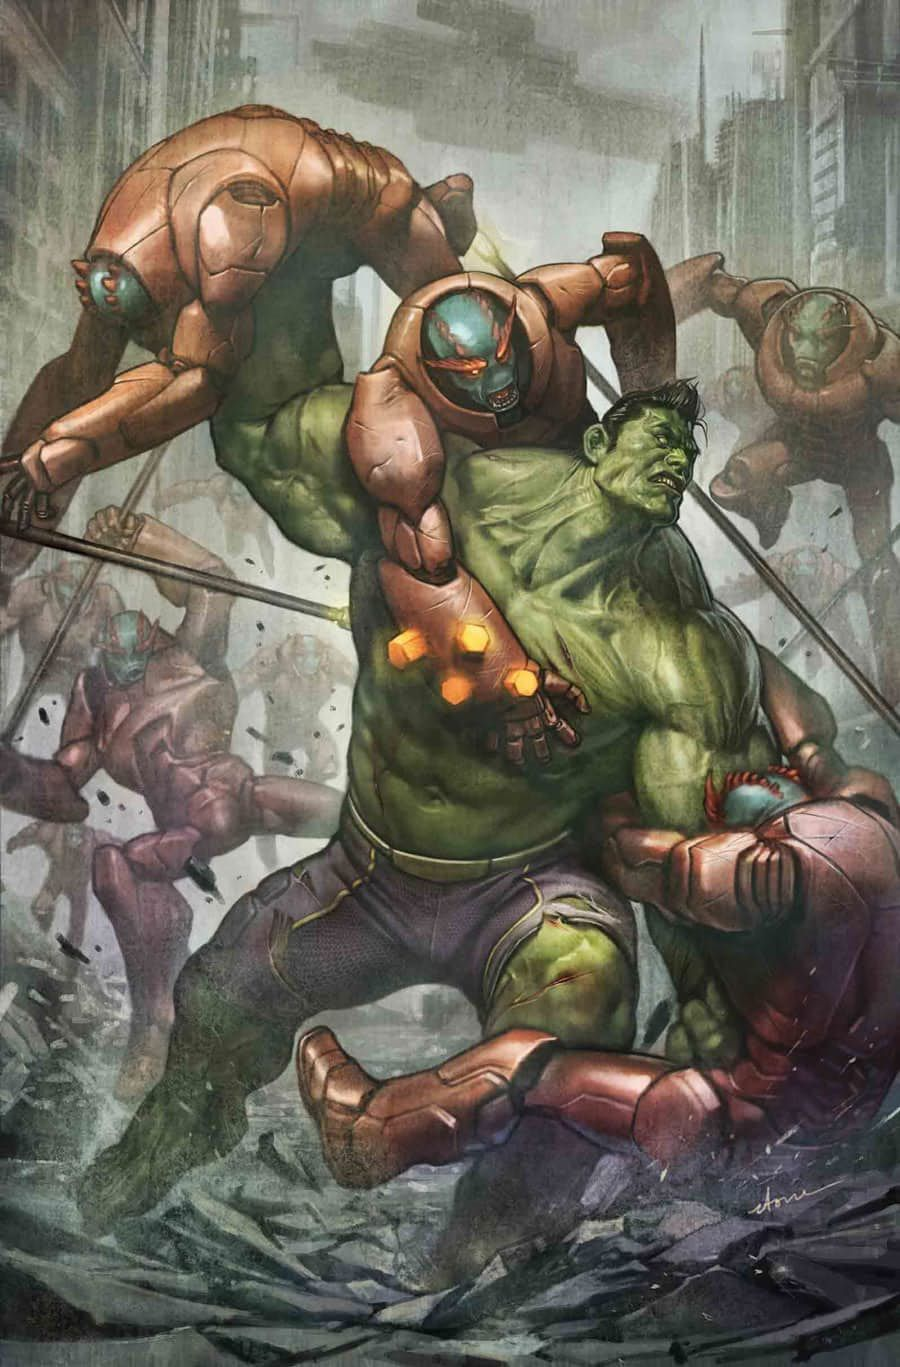 #Hulk #Fan #Art. (THE TOTALLY AWESOME HULK Vol.1 #18 Cover) By: STONEHOUSE. ÅWESOMENESS!!!™ ÅÅÅ+